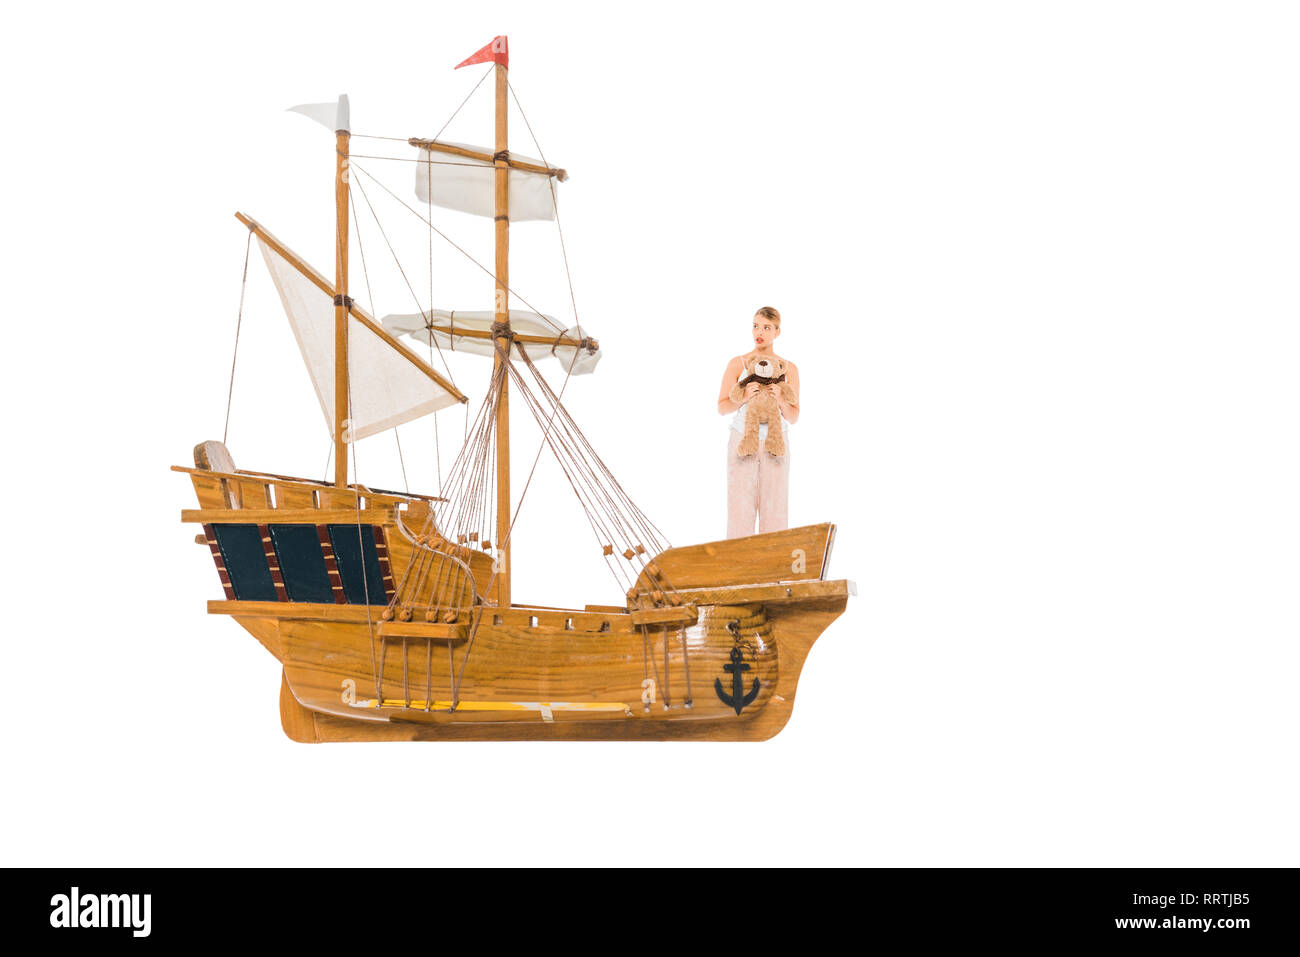 girl in pyjamas holding teddy bear and standing on floating ship model - Stock Image